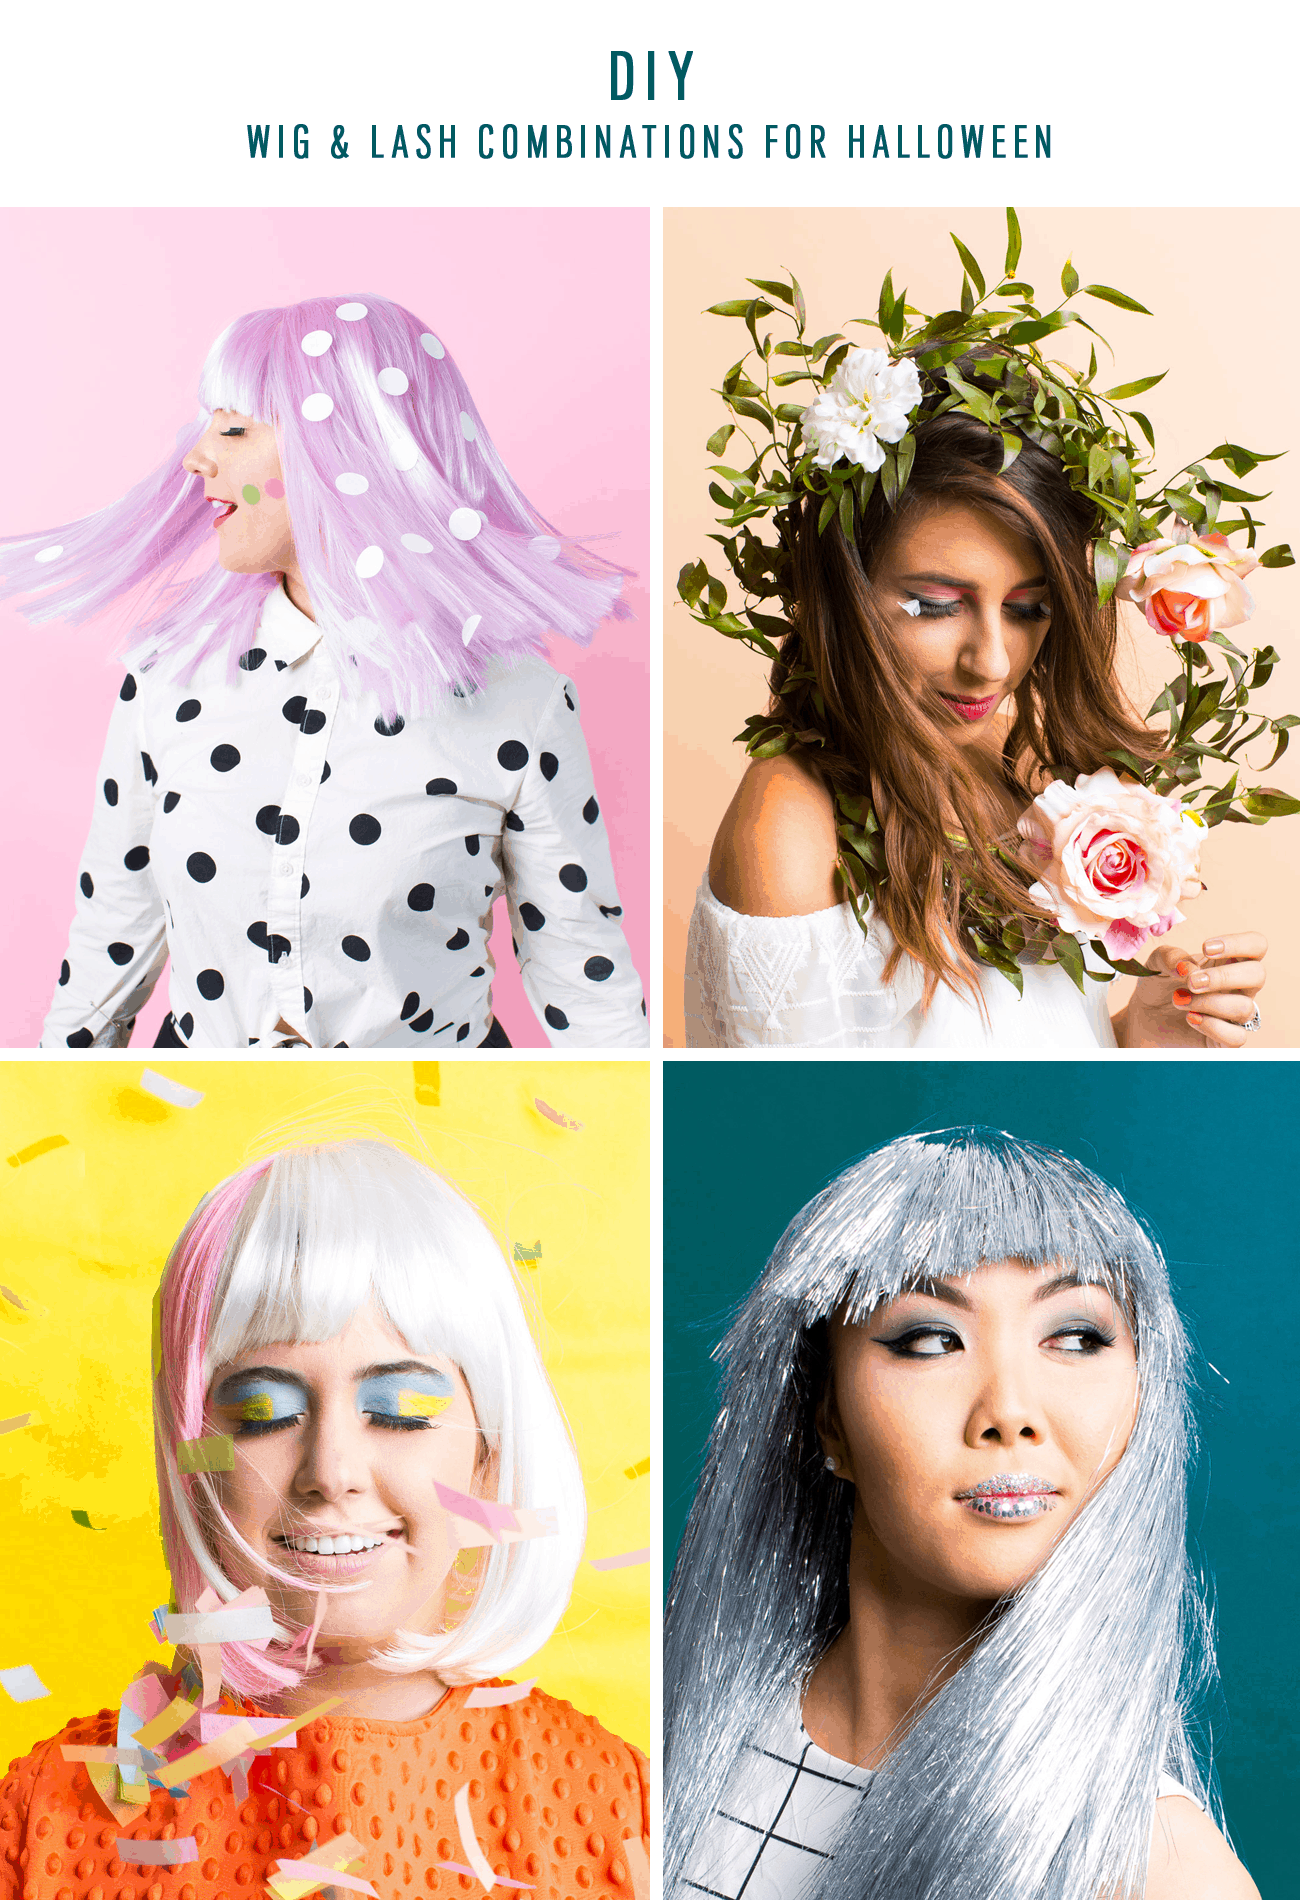 Winks & Wigs: DIY Wig and Lash Combinations for Halloween by Sugar & Cloth- Metallic Wig - ideas - ashley rose - best DIY blog - houston blogger #diy #blogger #costume #halloween #diycostume #halloweencostume #wig #falsies #lastminute #spacegirl